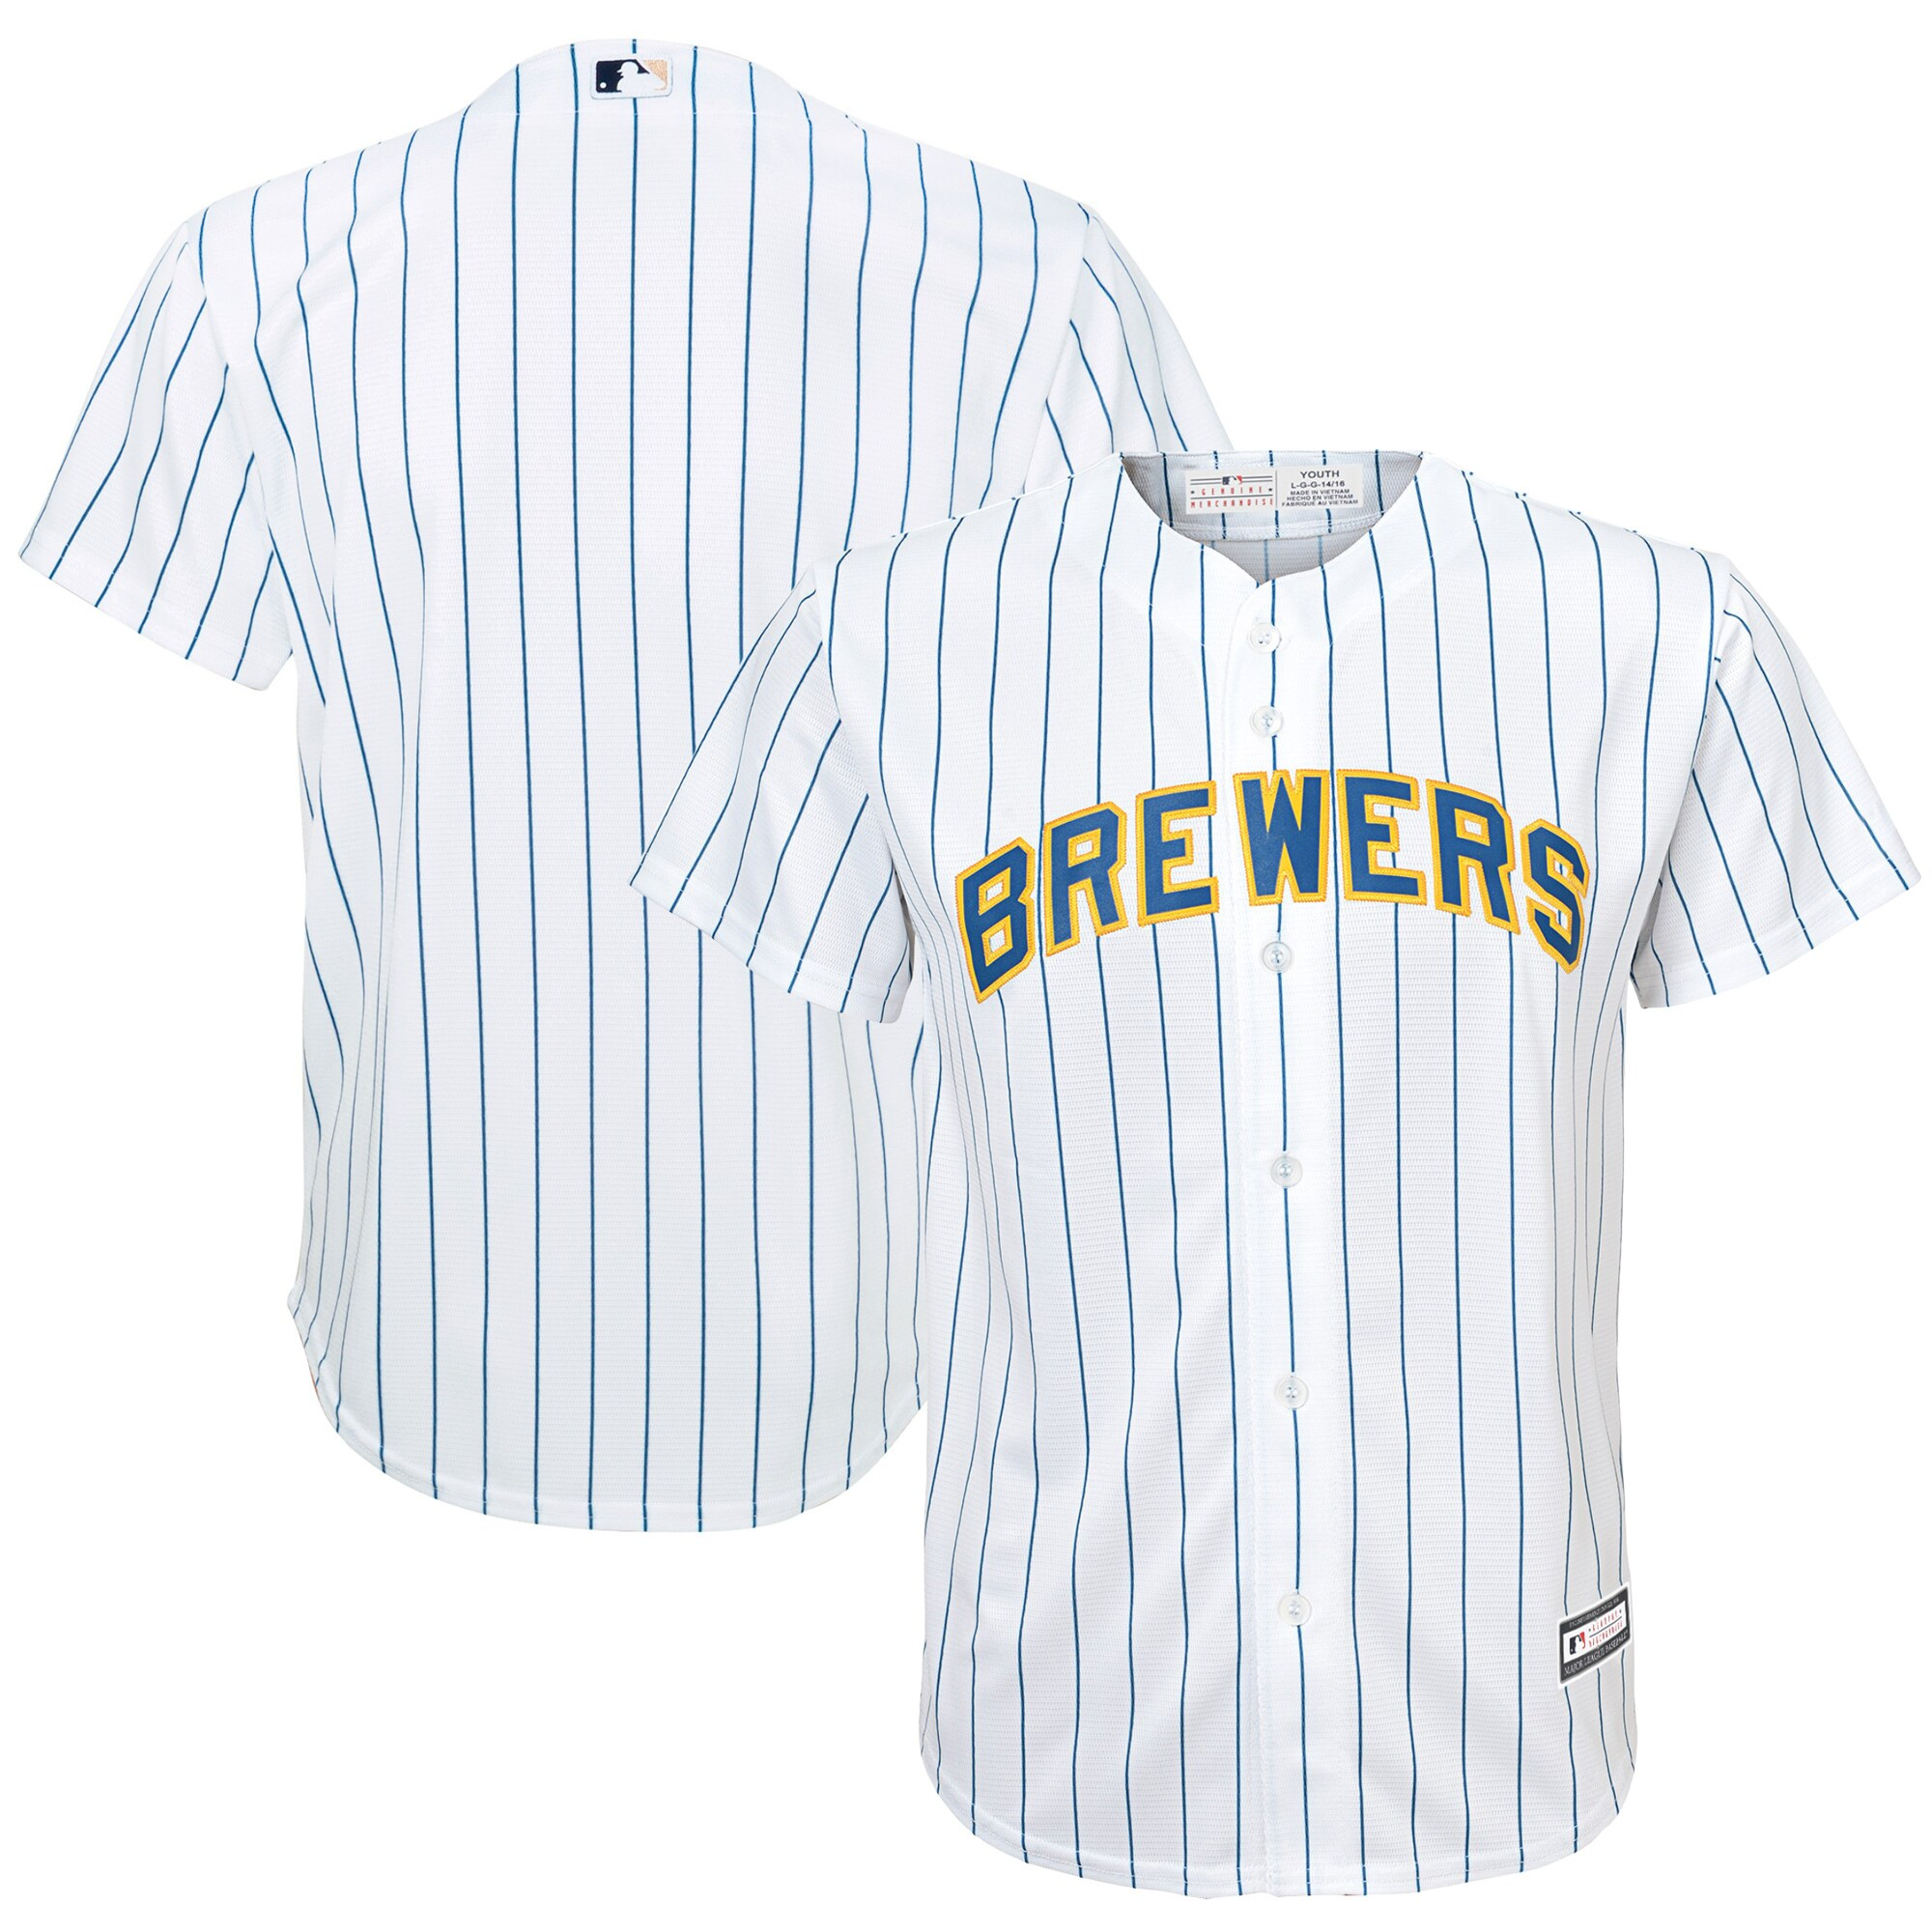 Milwaukee Brewers Youth Replica Team Jersey - White/Royal